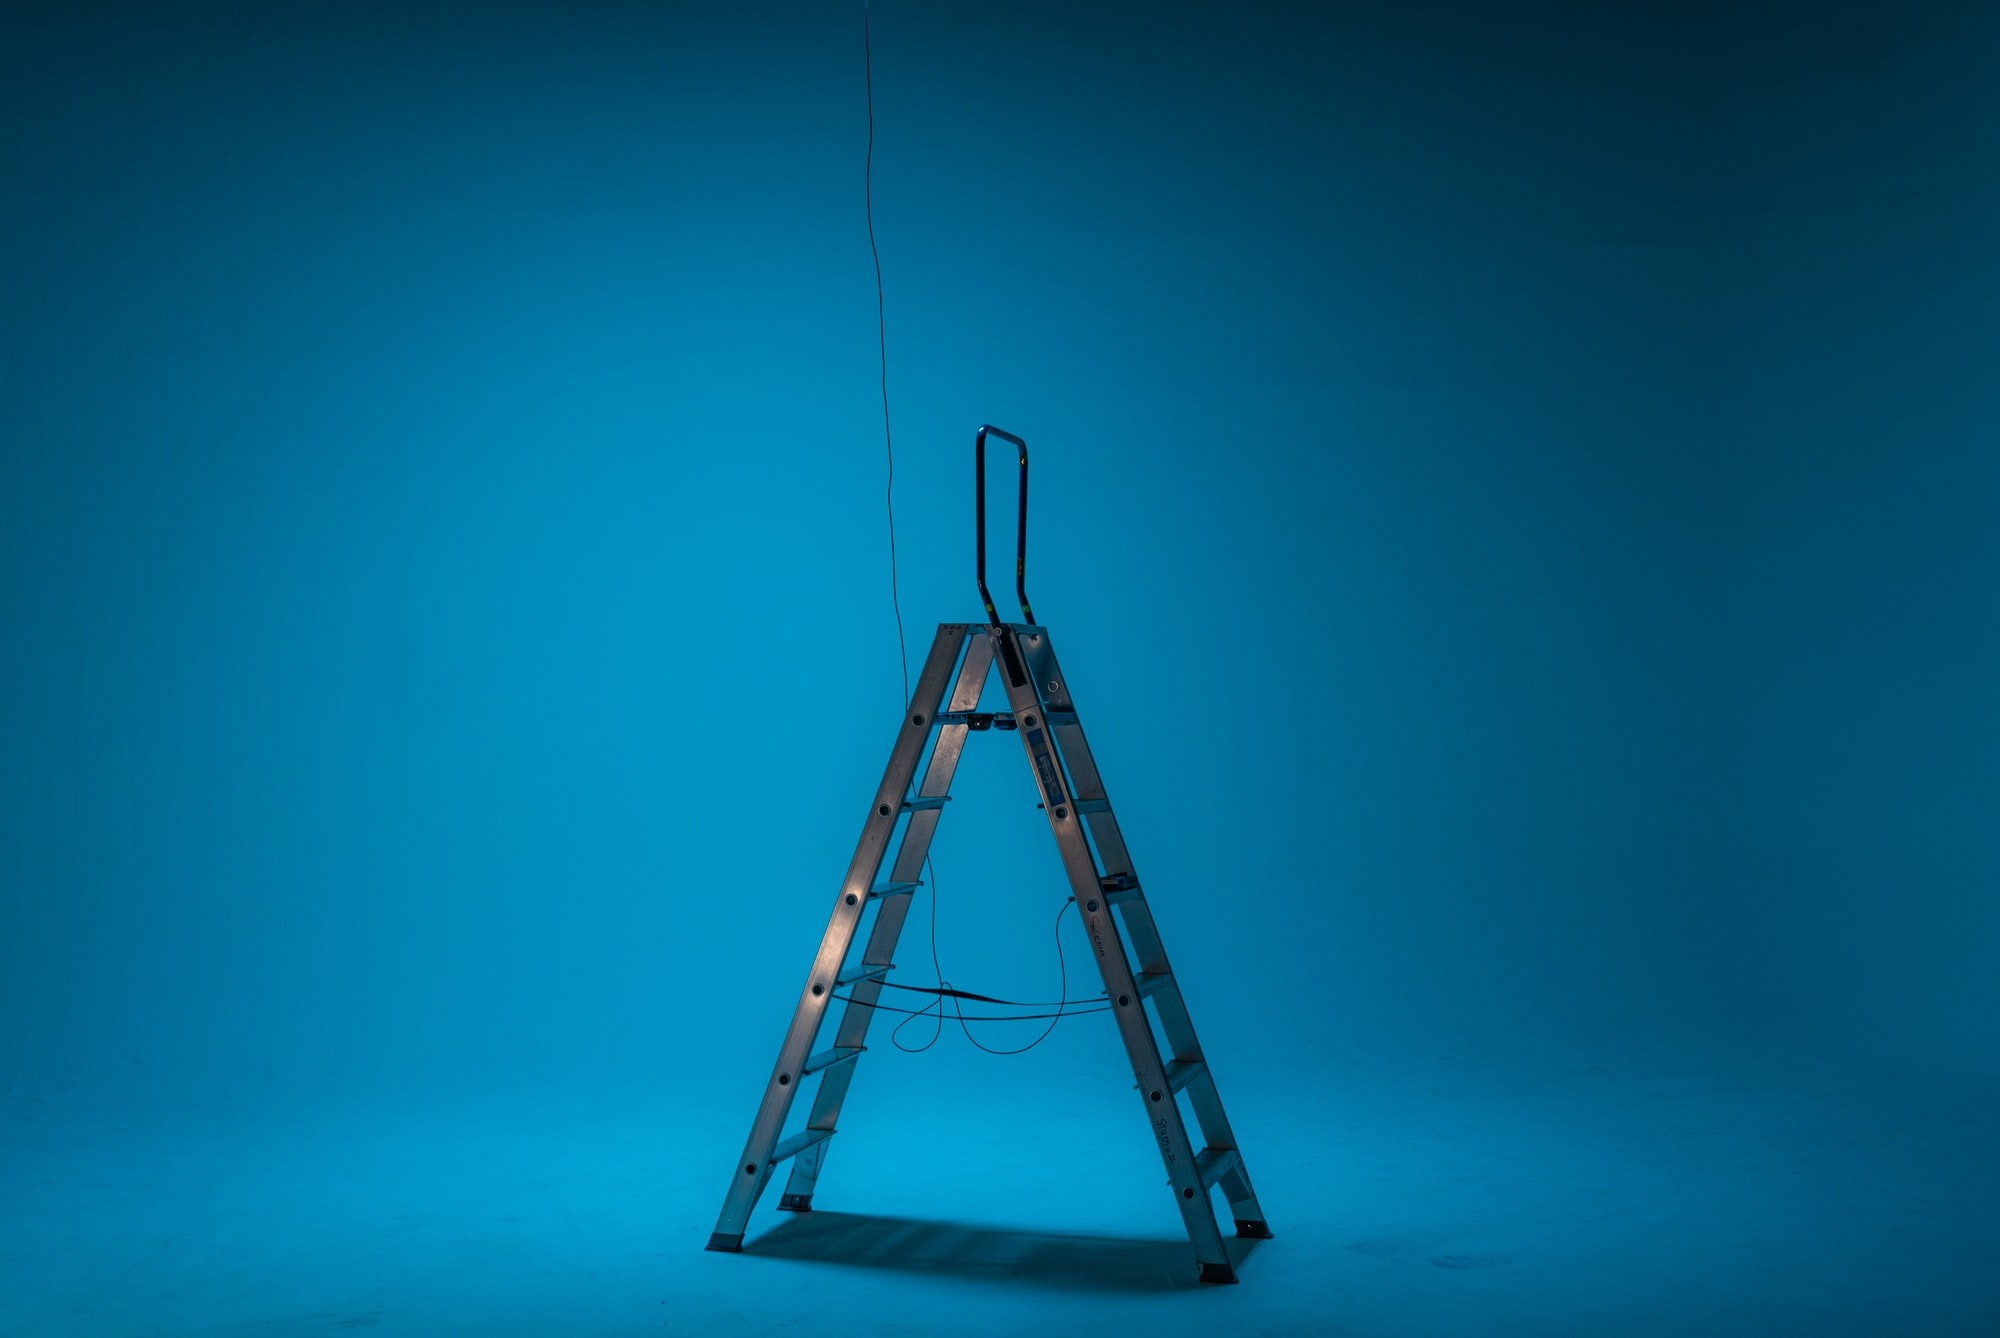 #168 — What is the ladder method to growth?